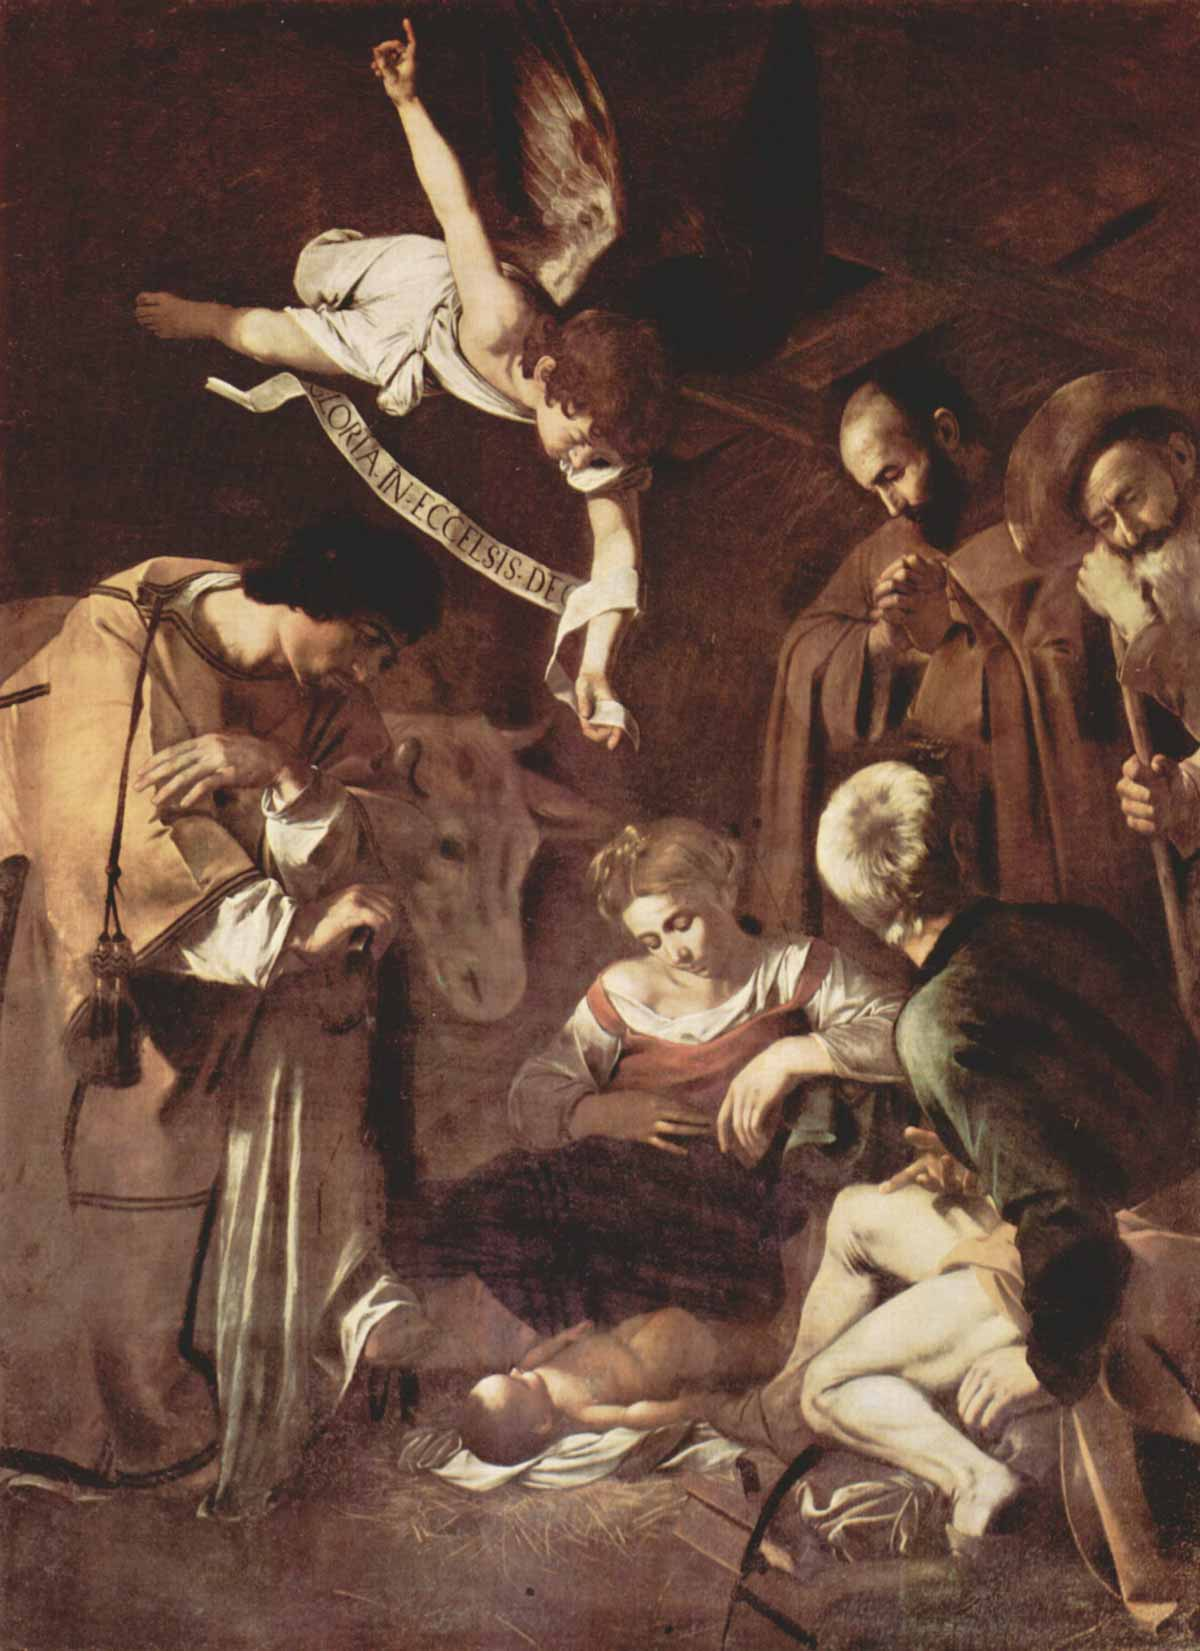 The painting by Michelangelo Merisi da Caravaggio: Nativity with St. Francis and St. Lawrence